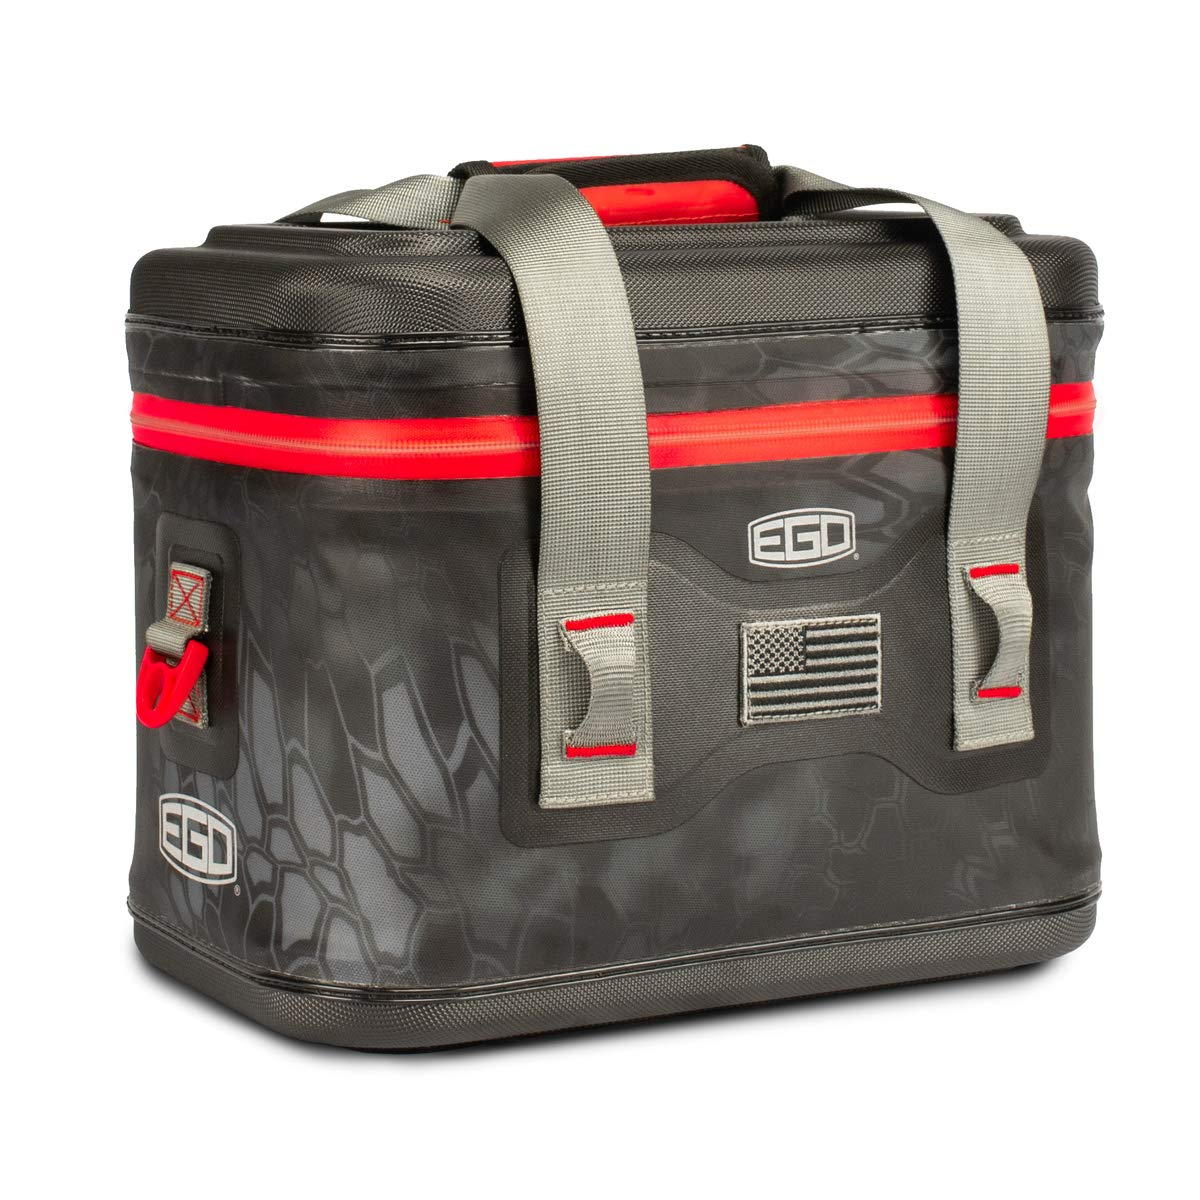 EGO Kryptek Beer Cooler, Fishing Storage Bag, High Tech TPU Fabric, 72 Hour Ice Retention, Food & Snack Holder, Angler Must Have, 4 Sizes Available